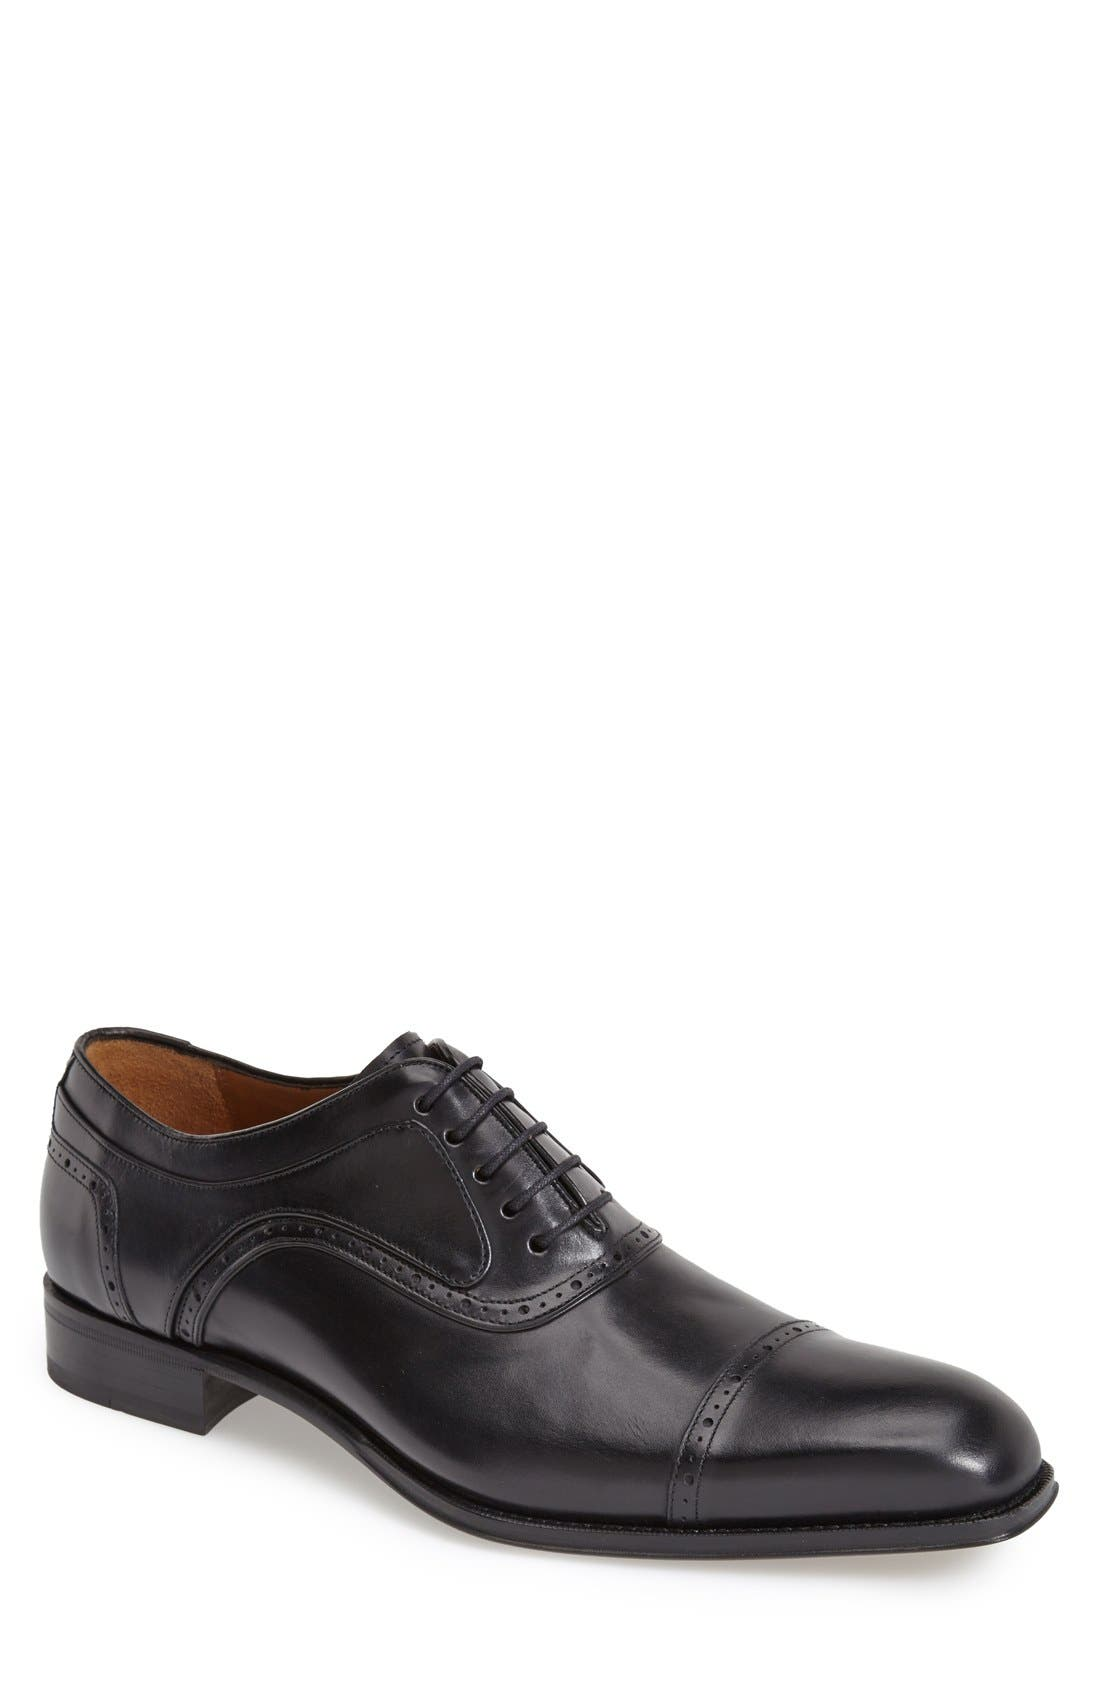 MEZLAN, 'March' Cap Toe Oxford, Main thumbnail 1, color, 001